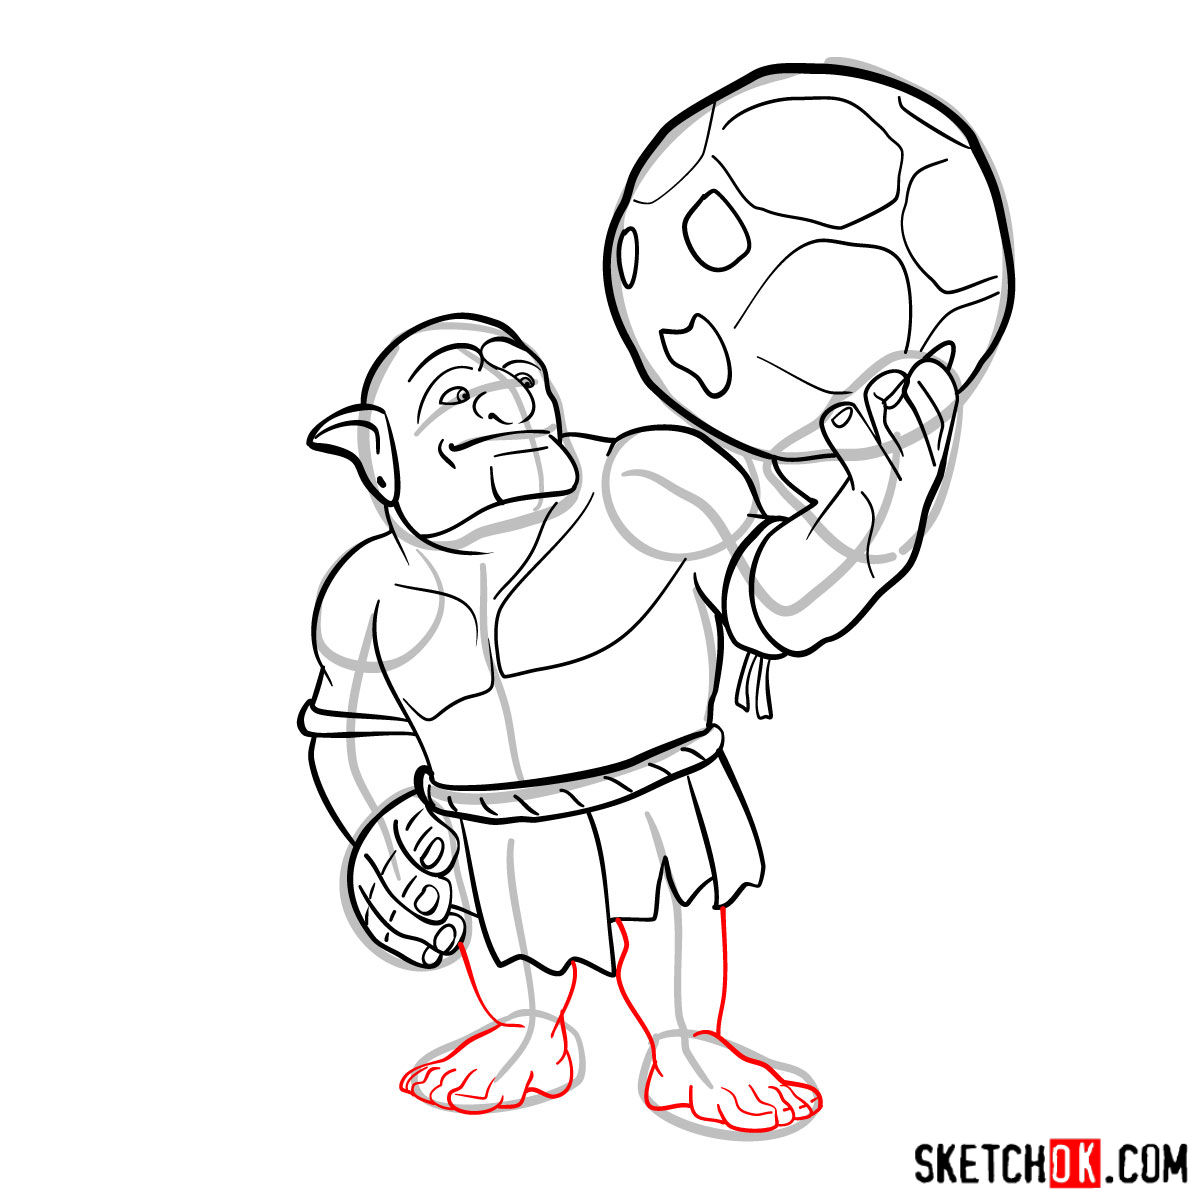 How to draw Bowler from Clash of Clans - step 09